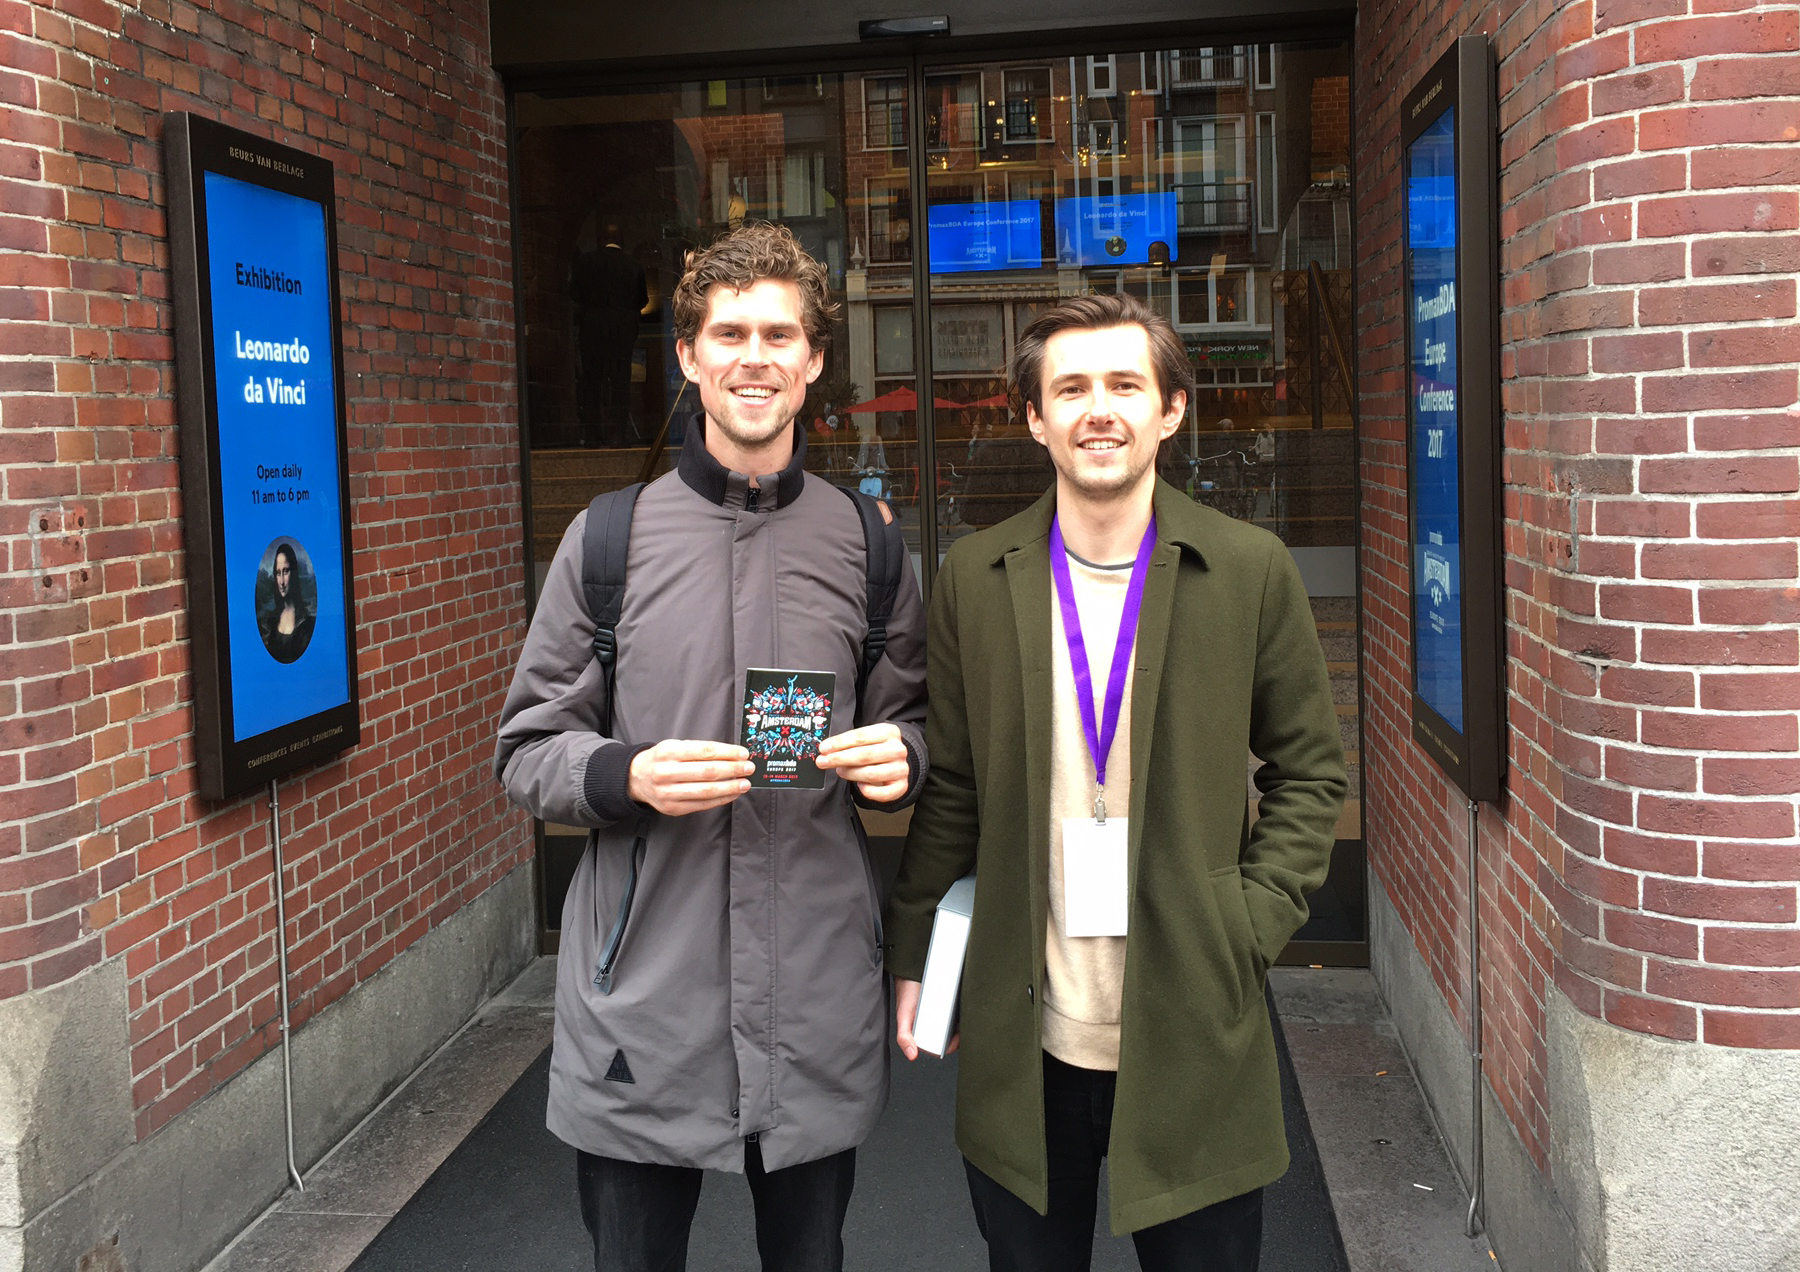 Lee with Boudewijn from  Voicebooking.com  outside Beurs Van Berlage